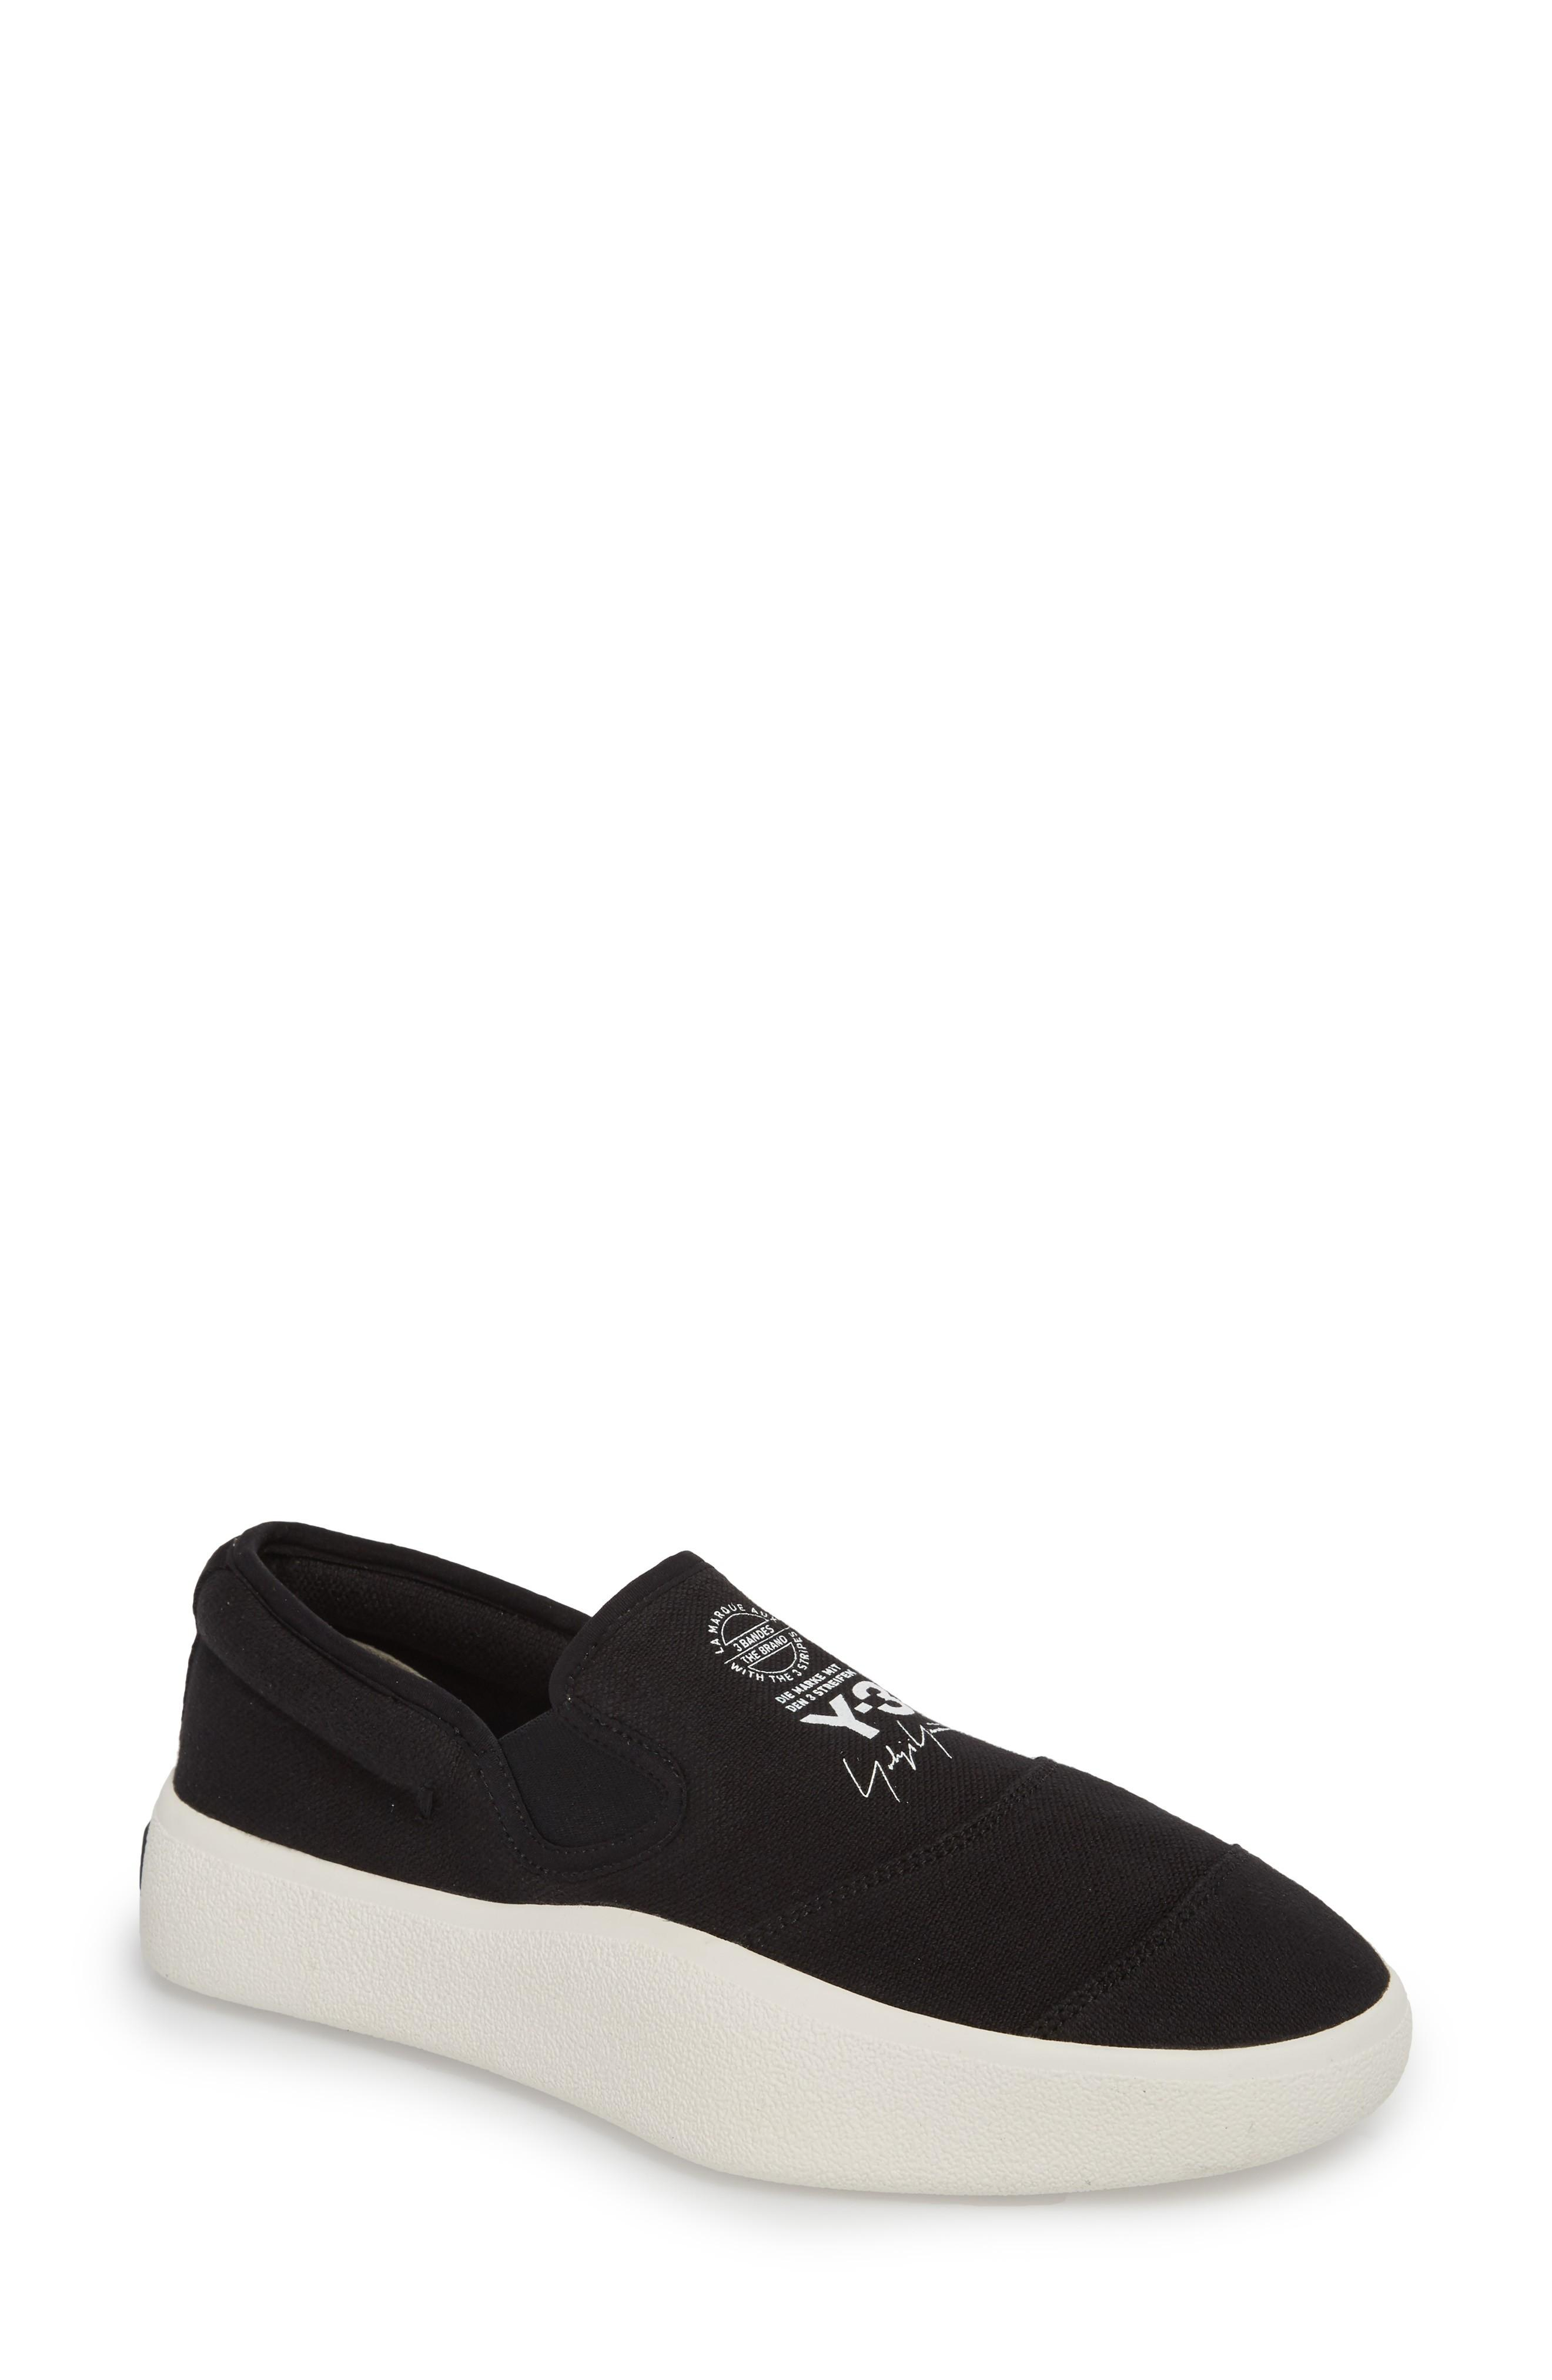 4ae088577 Y-3 Tangutsu Slip-On Sneaker In Black   White   Core White